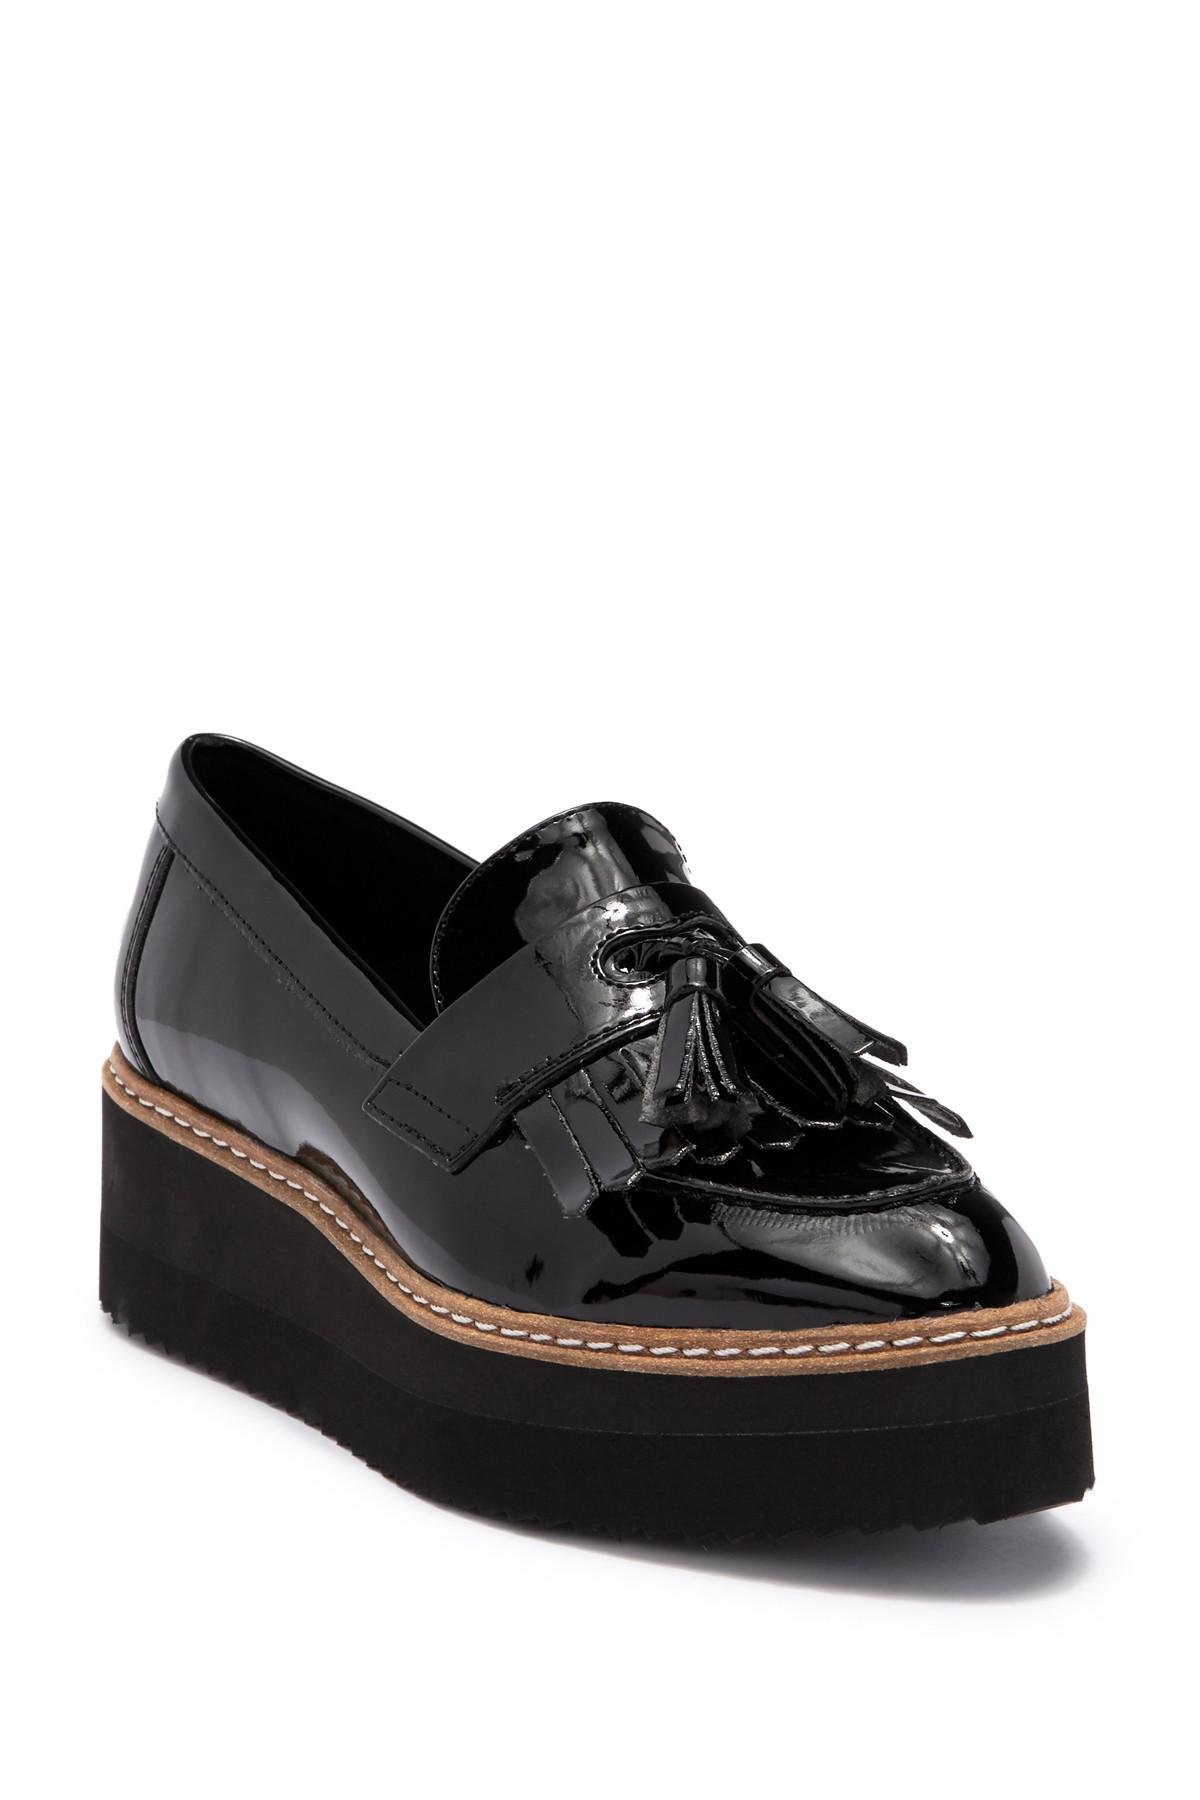 Shellys London Toby Leather Tassel Loafer cXdky